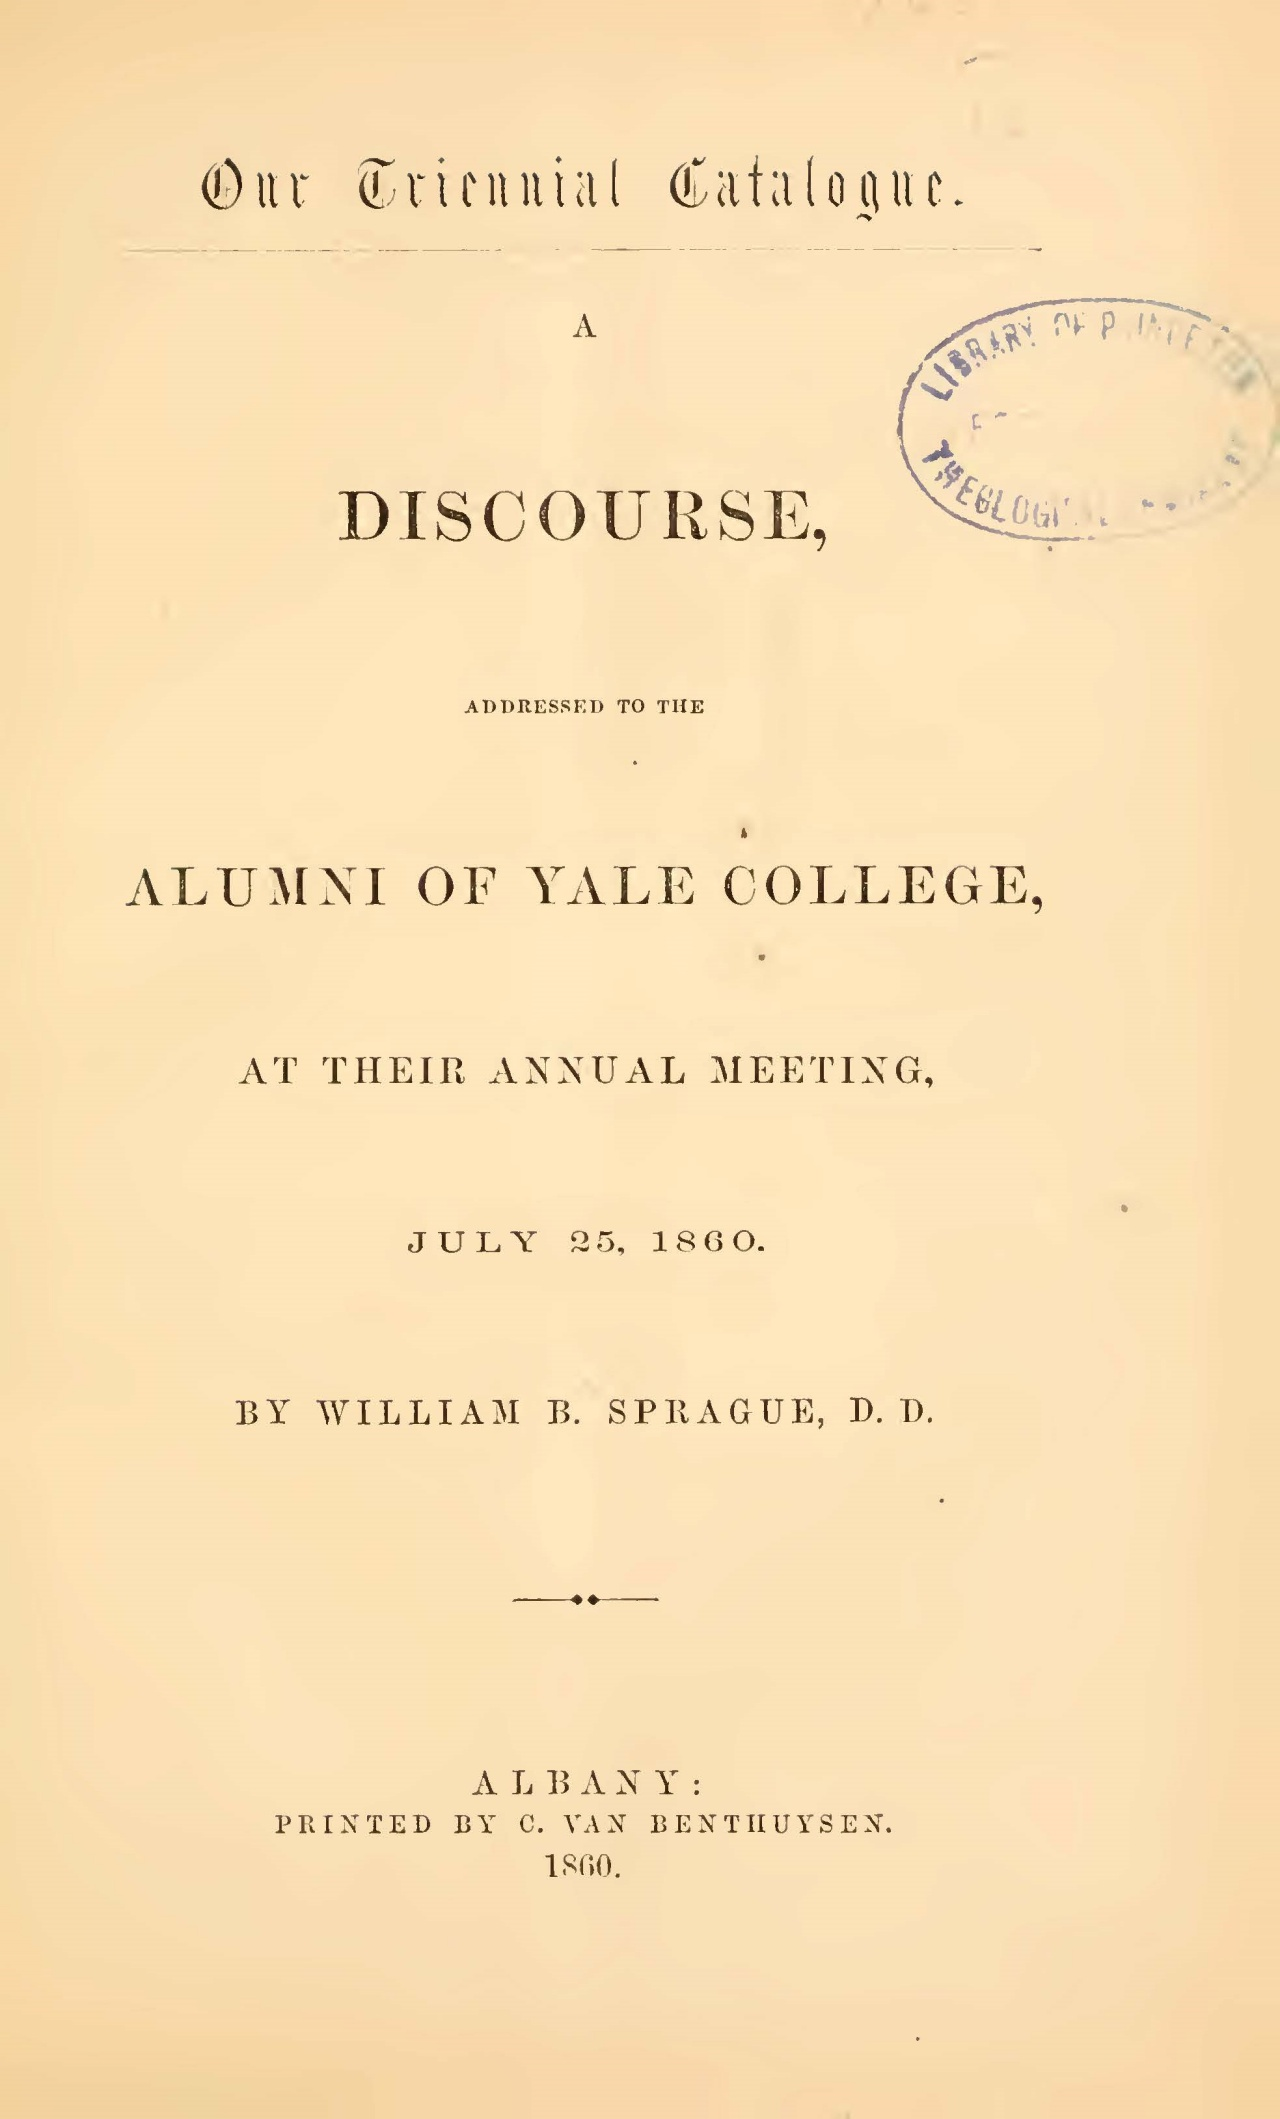 Sprague, William Buell, A Discourse Addressed to the Alumni of Yale College Title Page.jpg